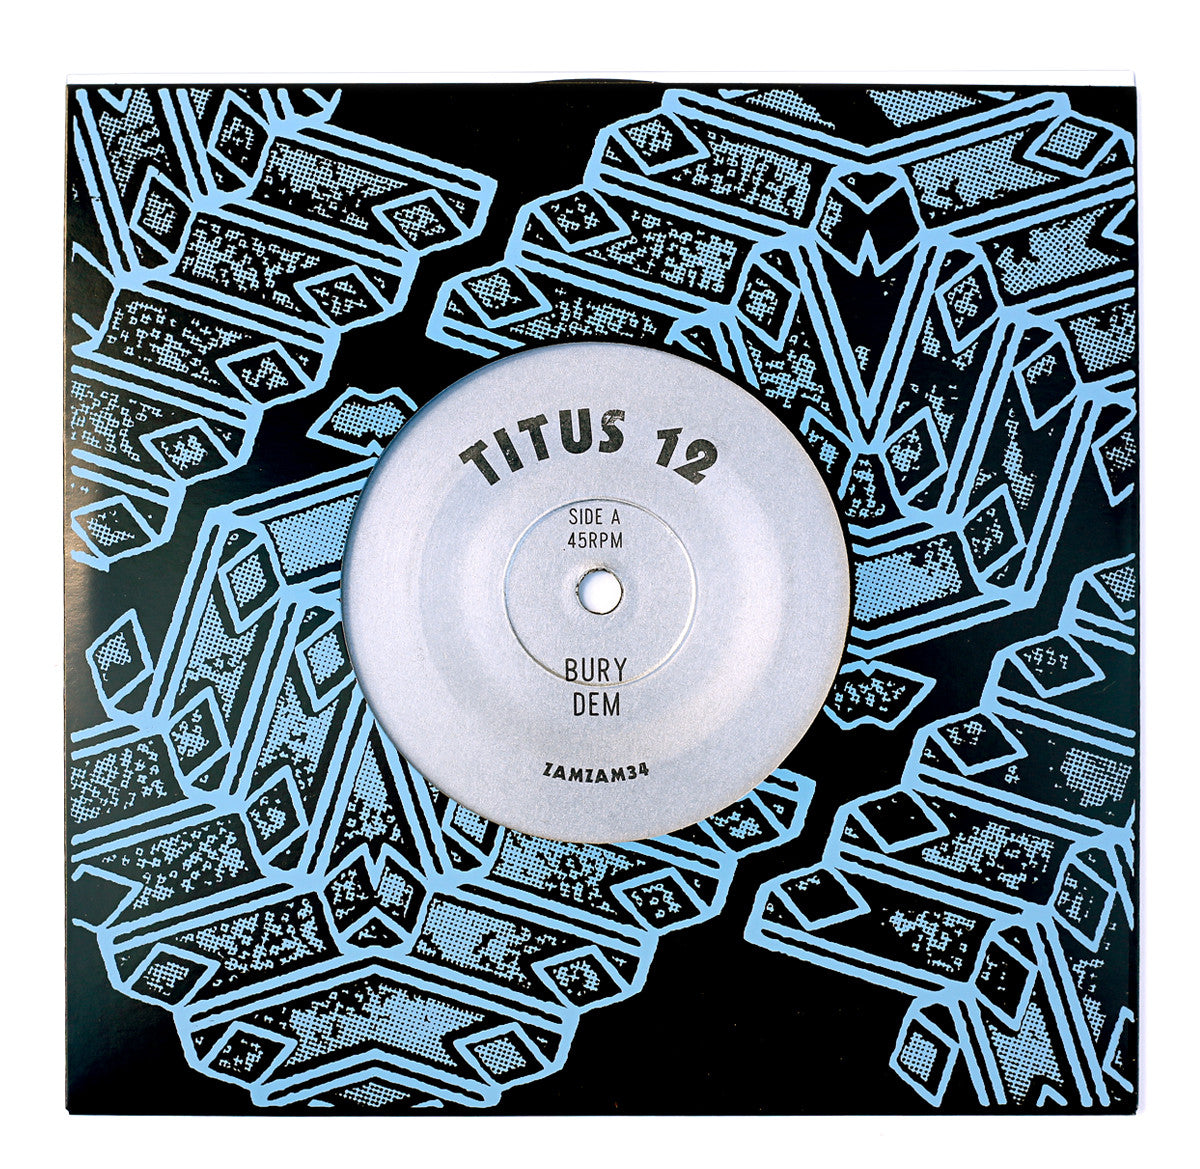 Titus - Bury Dem / Everyone Should (Wake Me Up) - Unearthed Sounds